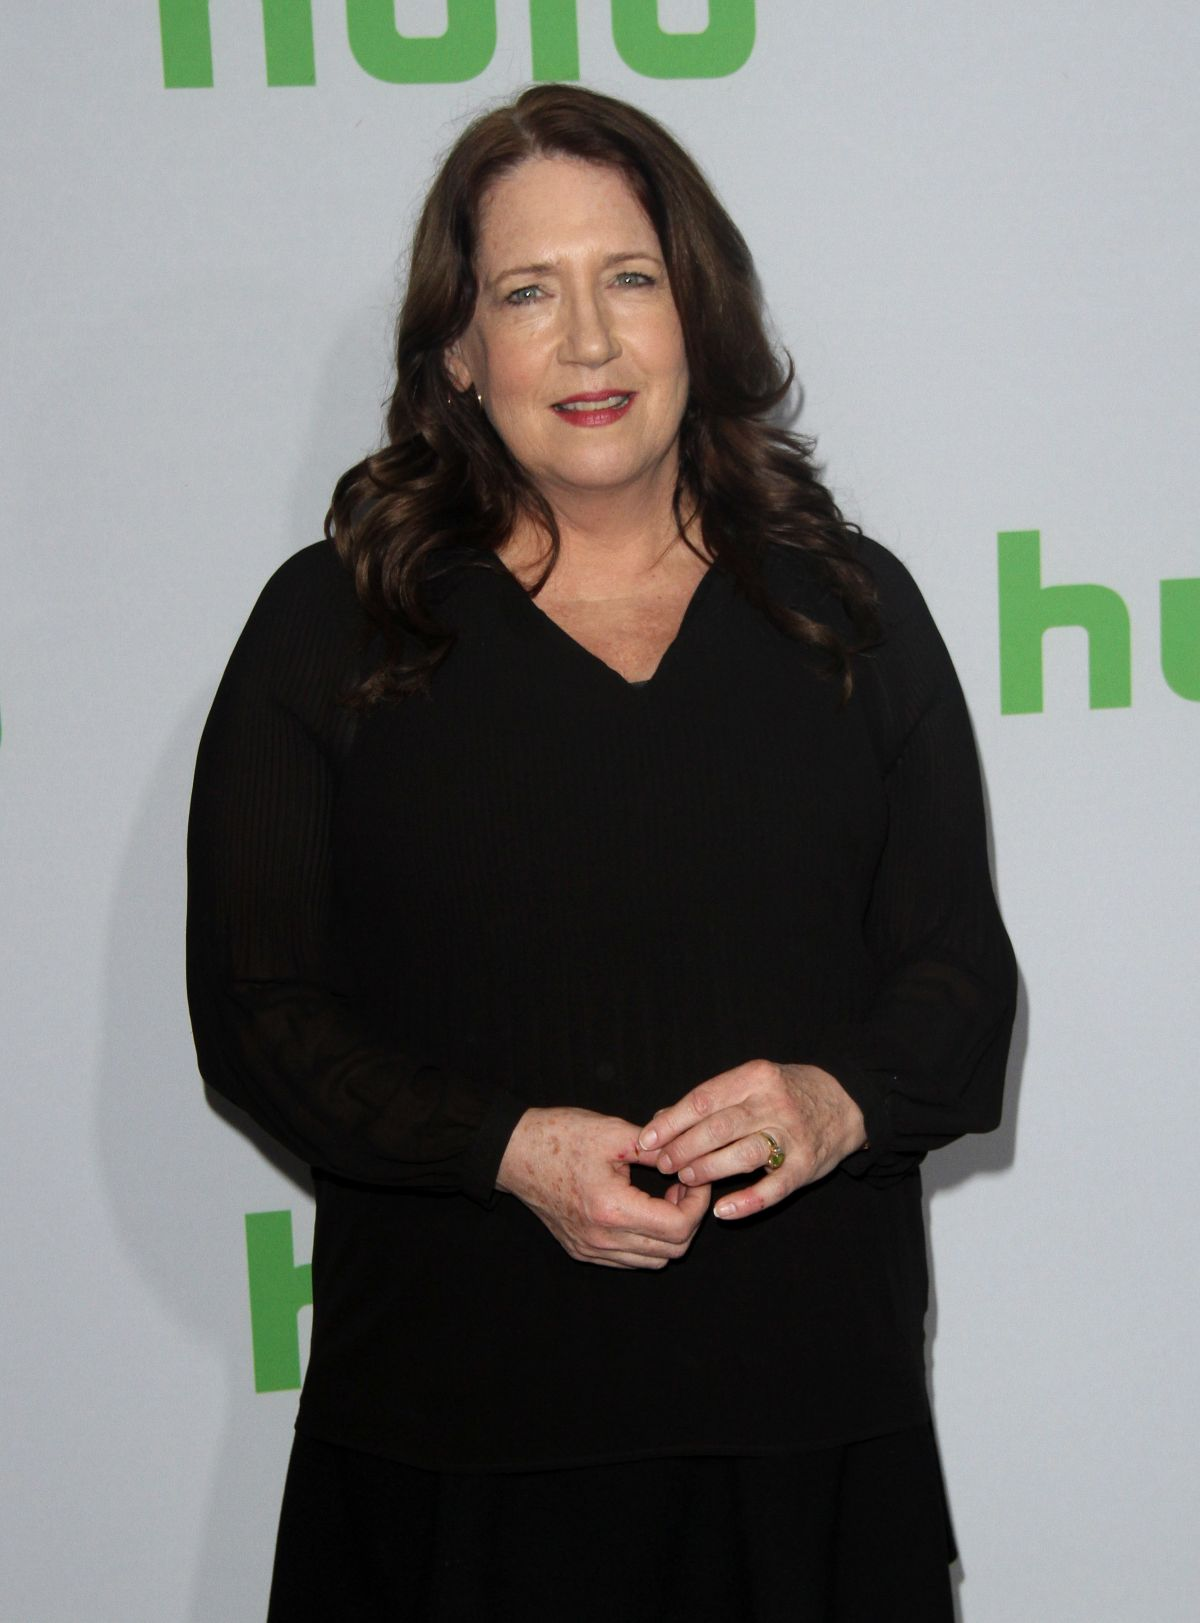 ANN DOWD at Hulu's Winter TCA 2017 in Los Angeles 01/07/2017